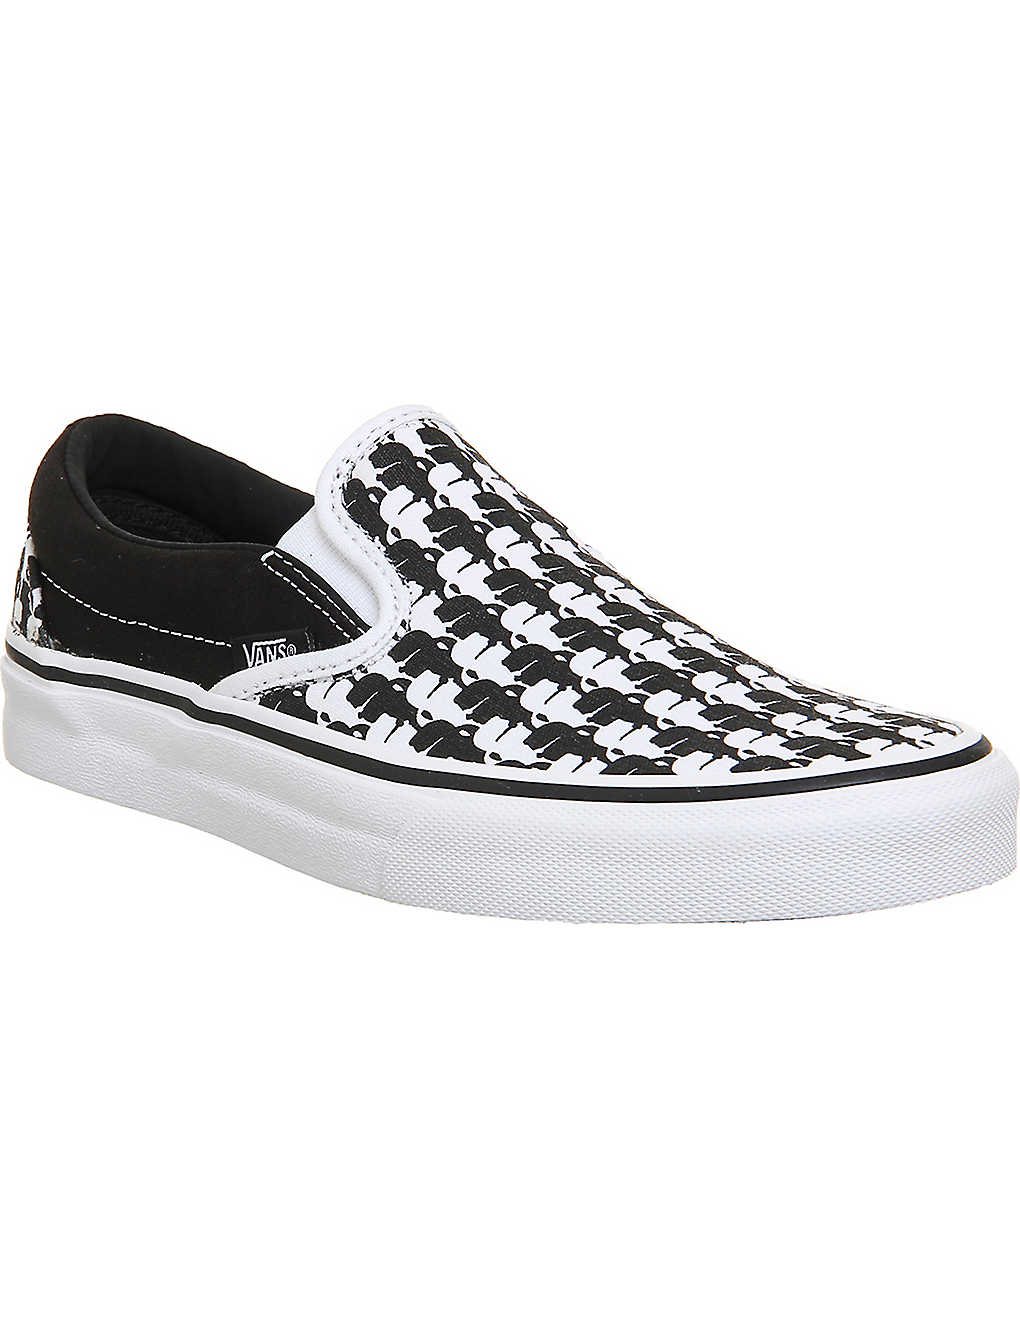 7a490705be VANS - Vans x Karl Lagerfeld Classic canvas slip-on trainers ...